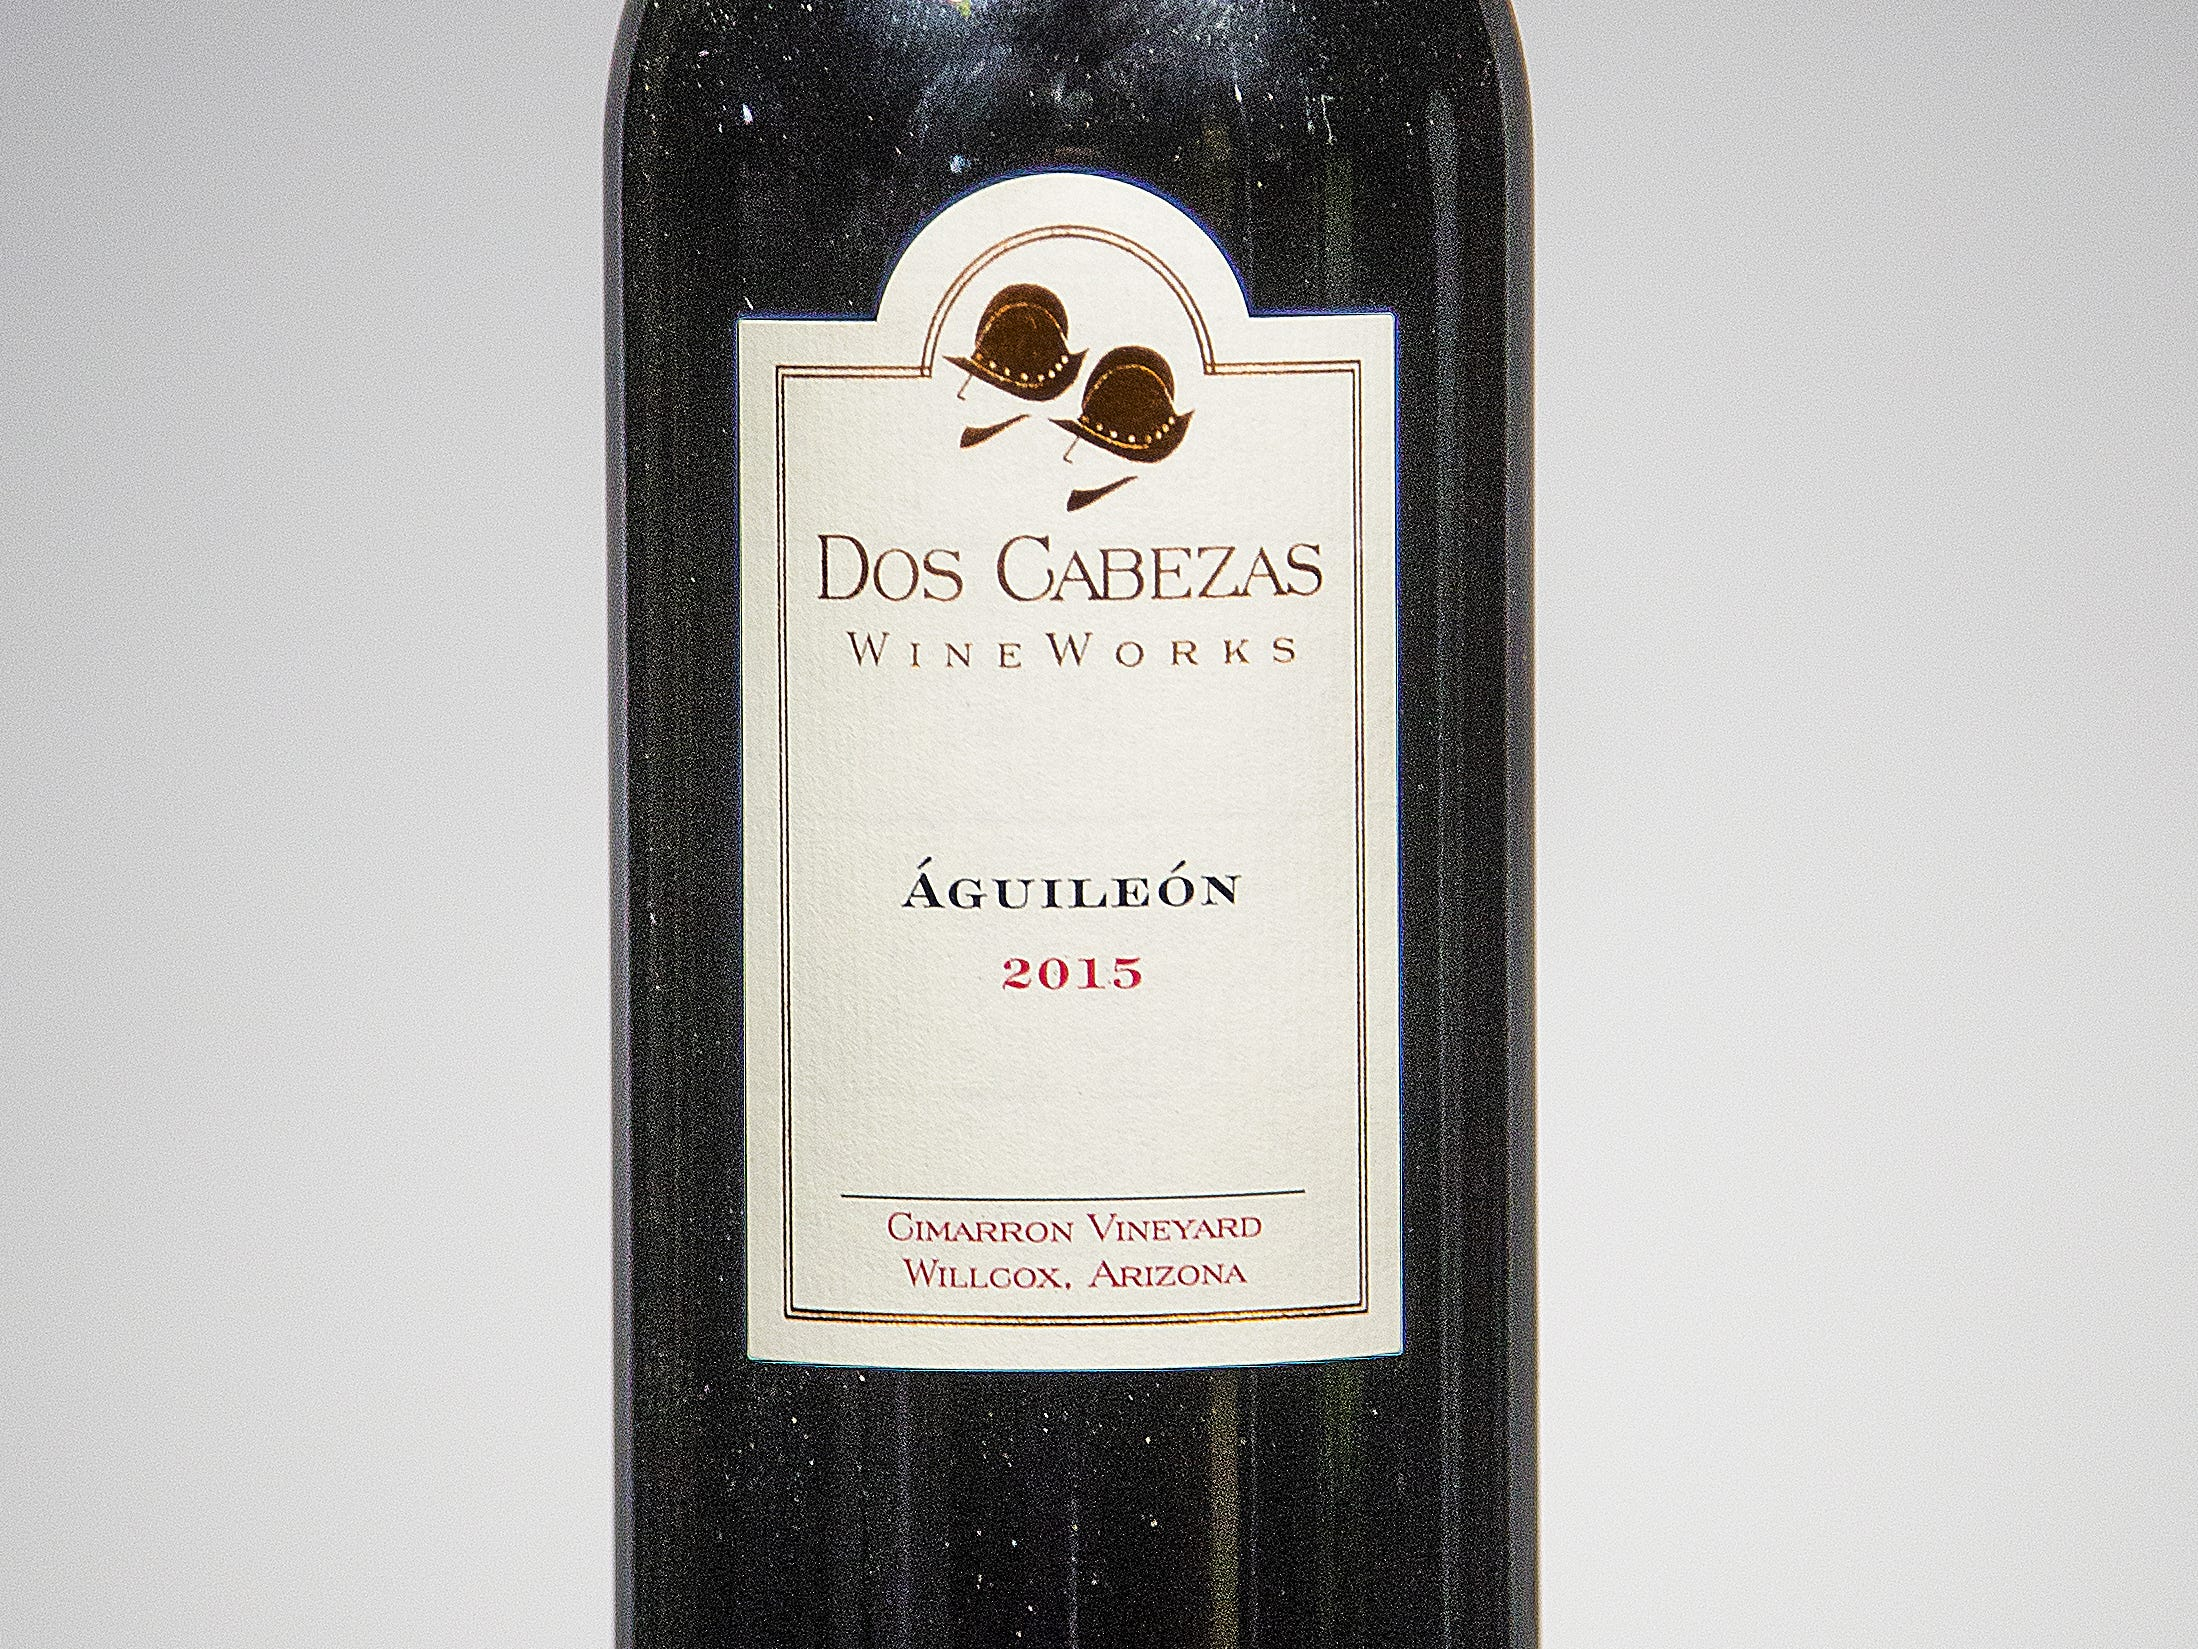 Judges named the Dos Cabezas WineWorks Aguileon 2015 as the Best In Show at the 2018 azcentral Arizona Wine Competition. The wine was also named Best Red Wine and Best Non-Traditional Red Blend.